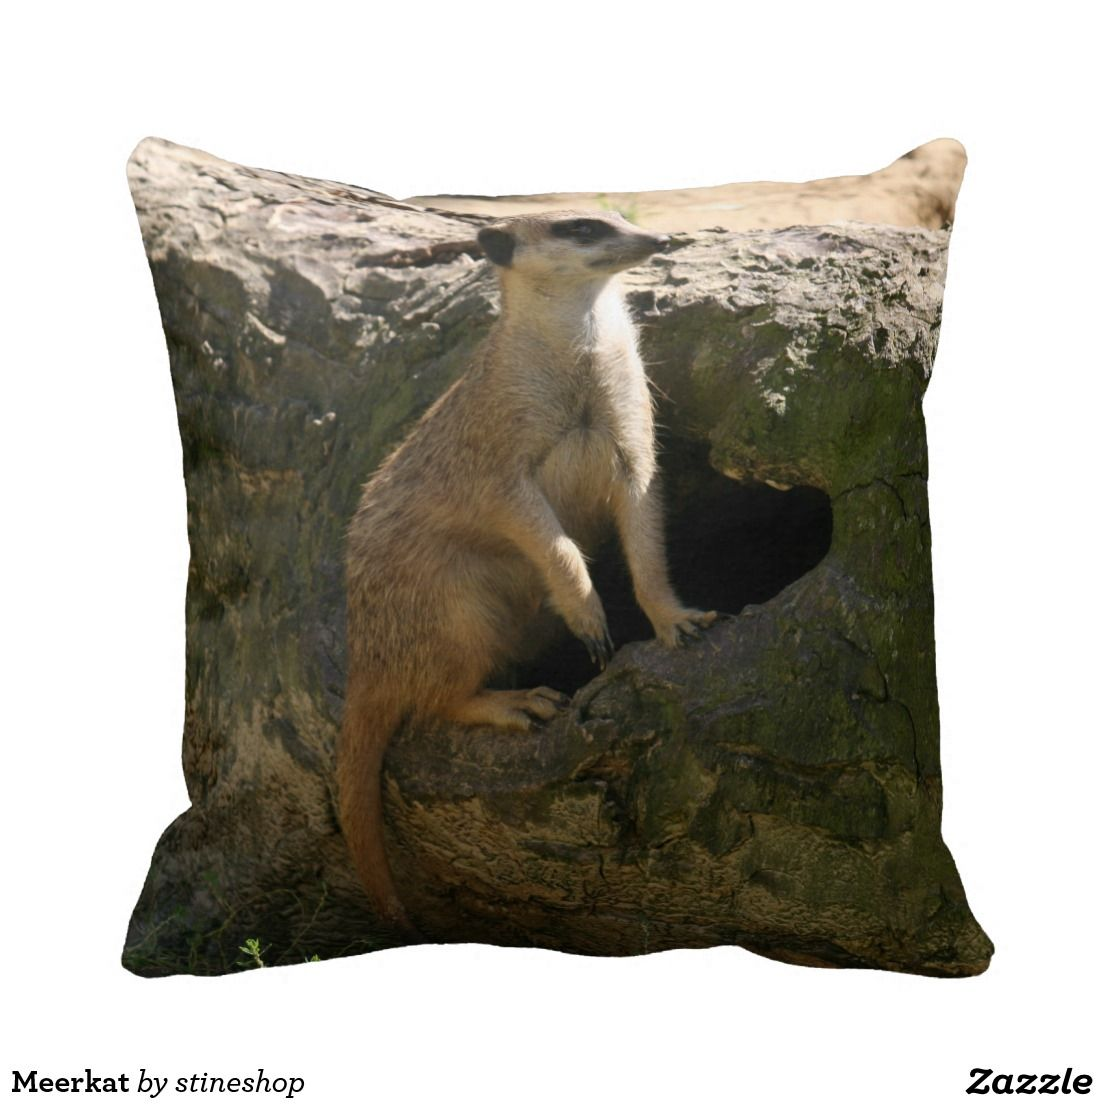 Meerkat Pillows